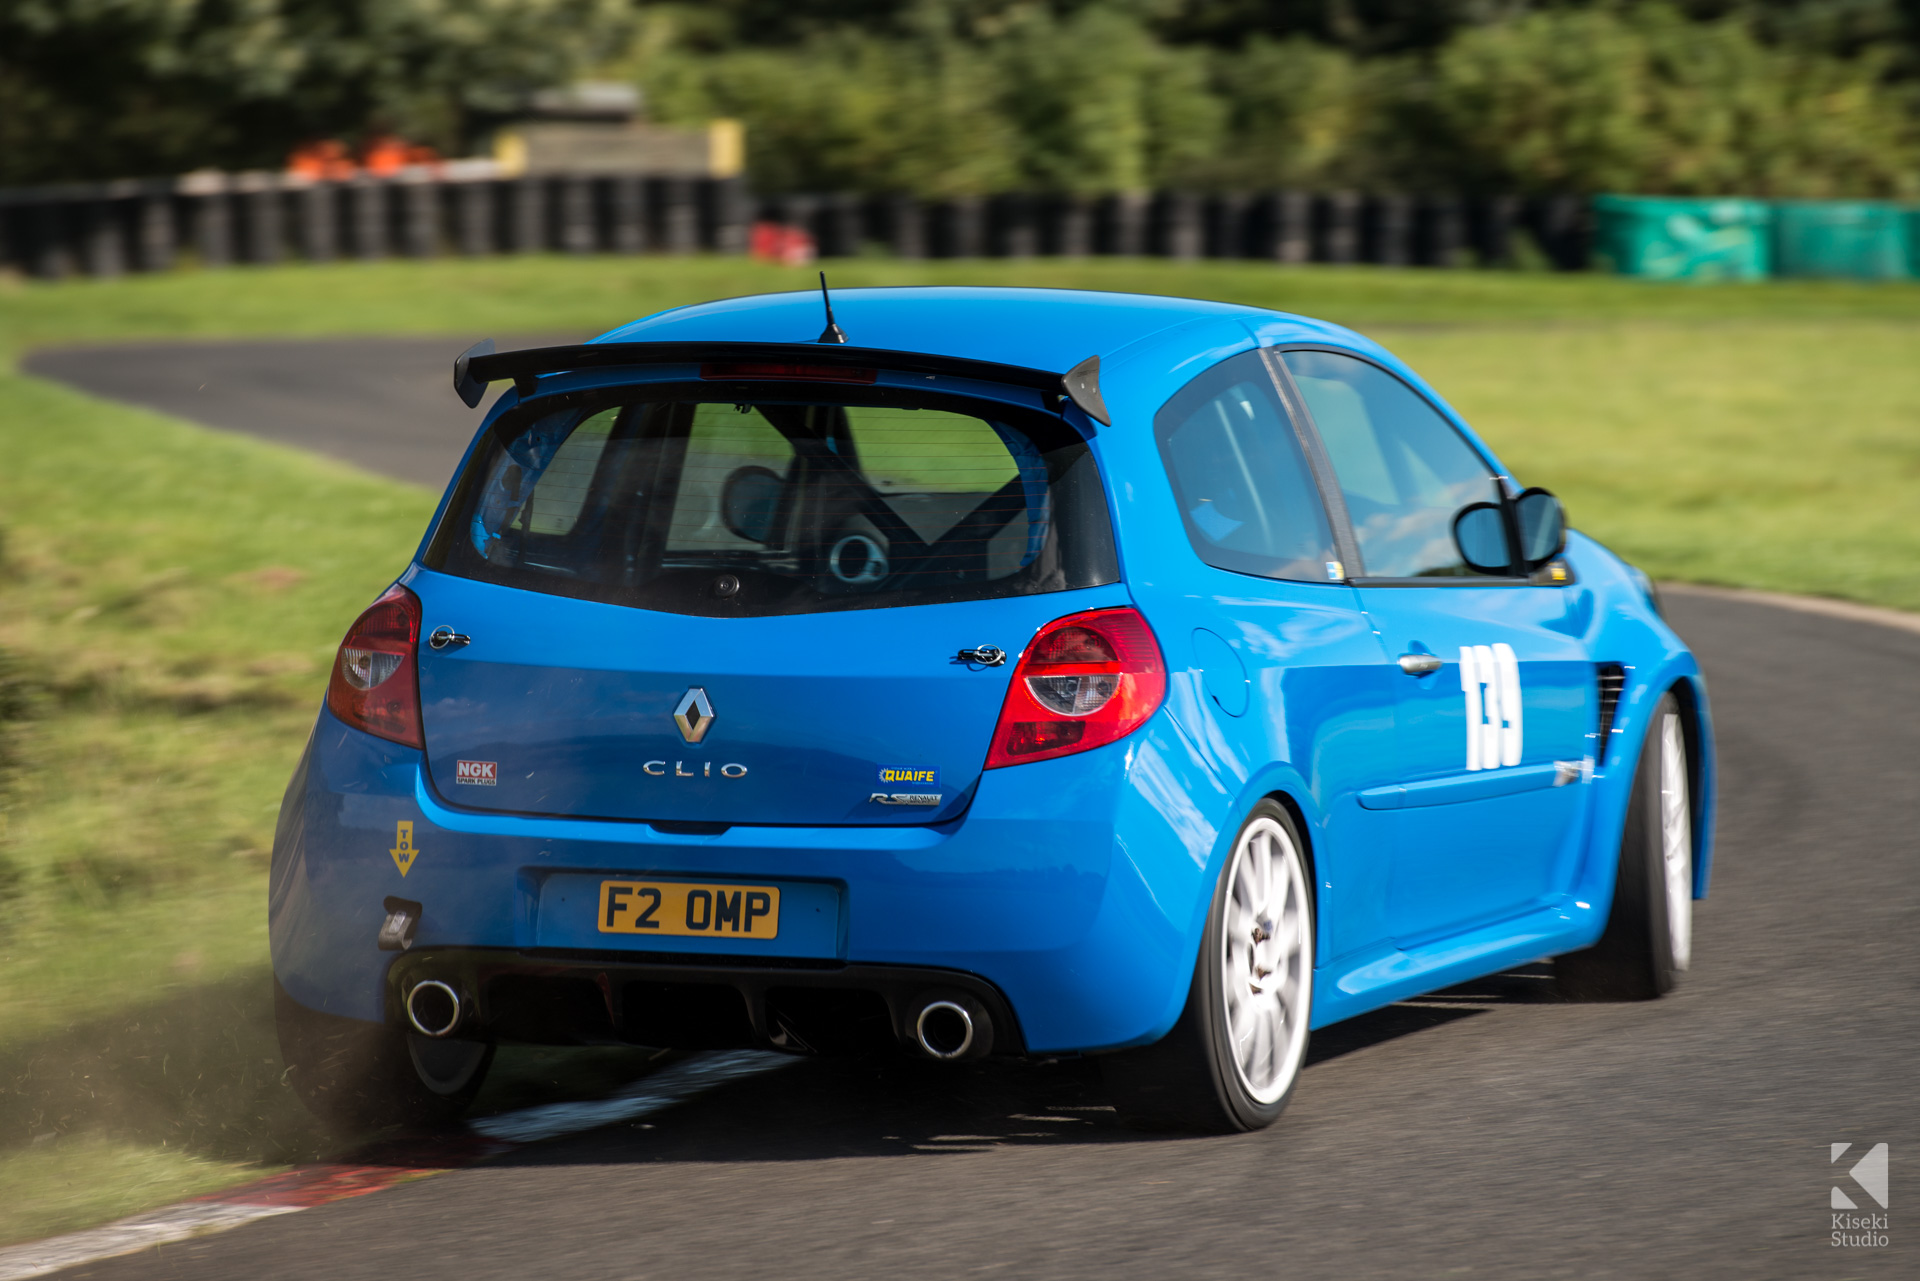 Renault Clio Sport 197 in blue at Harewood